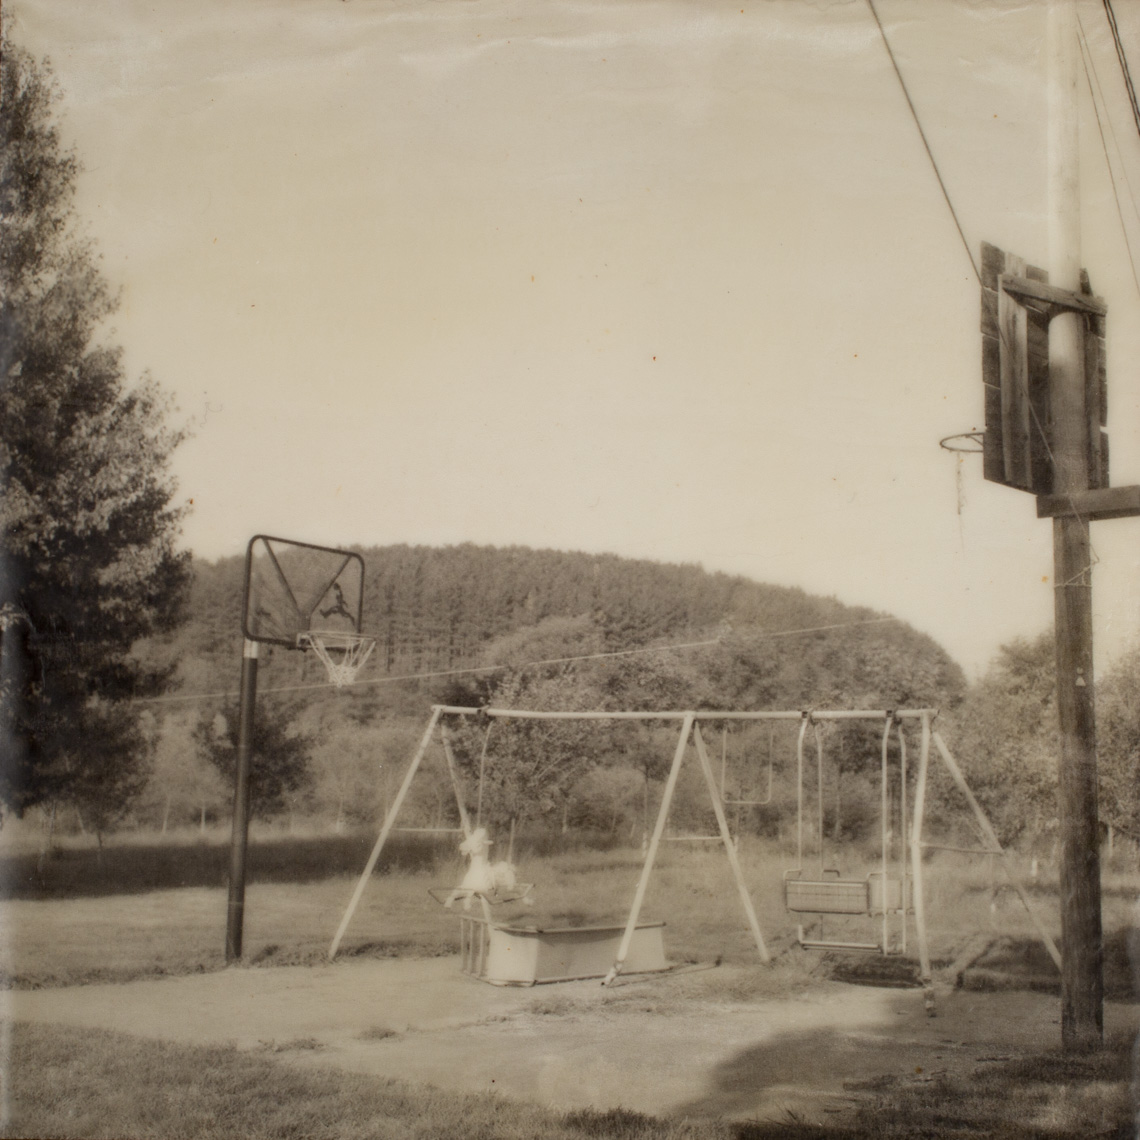 Ohio, Swing Set